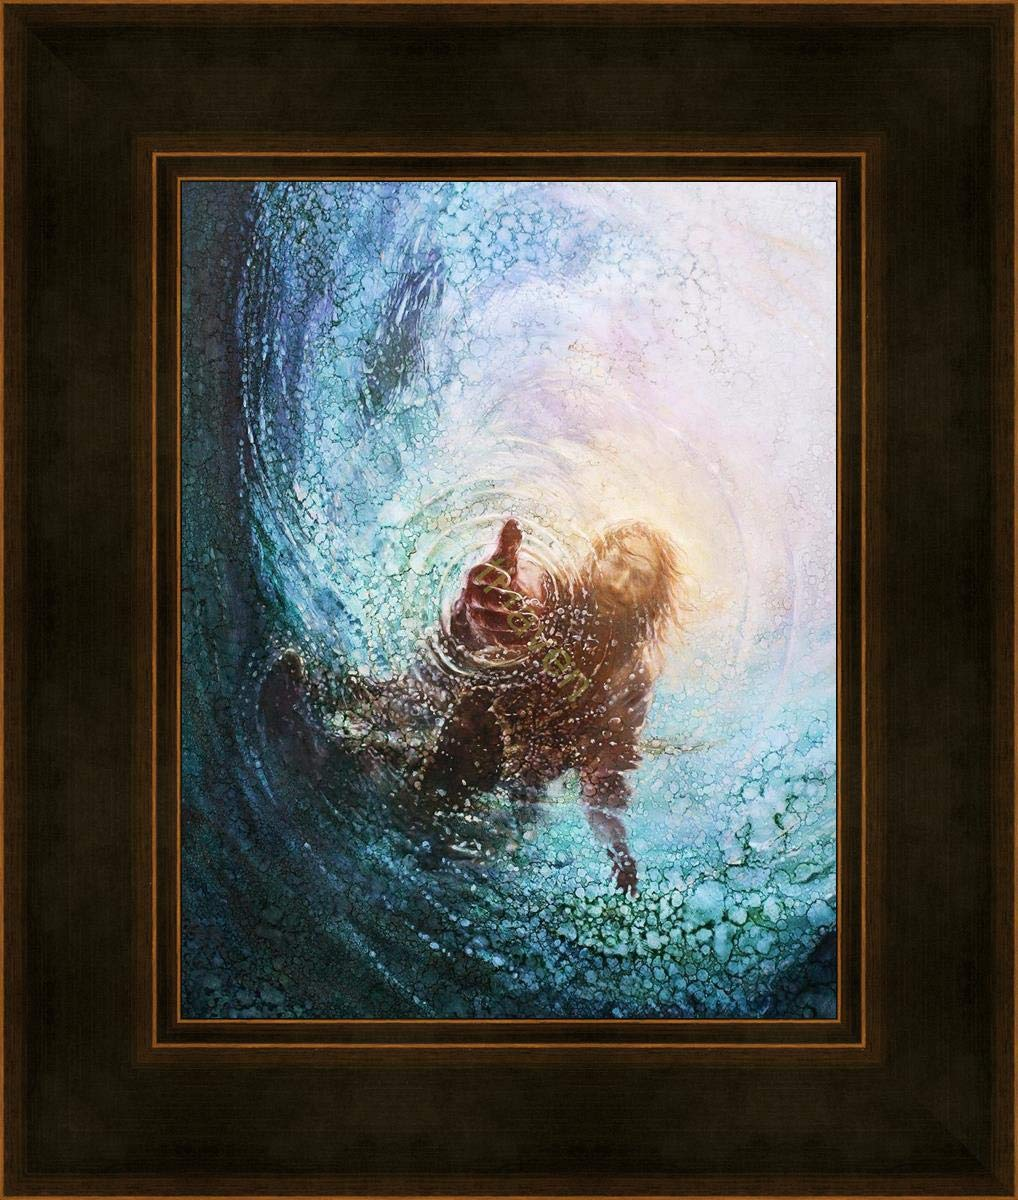 """Havenlight Yongsung Kim - The Hand of God Painting - Jesus Reaching Into Water - 16"""" x 20"""" Brown Framed Print from"""